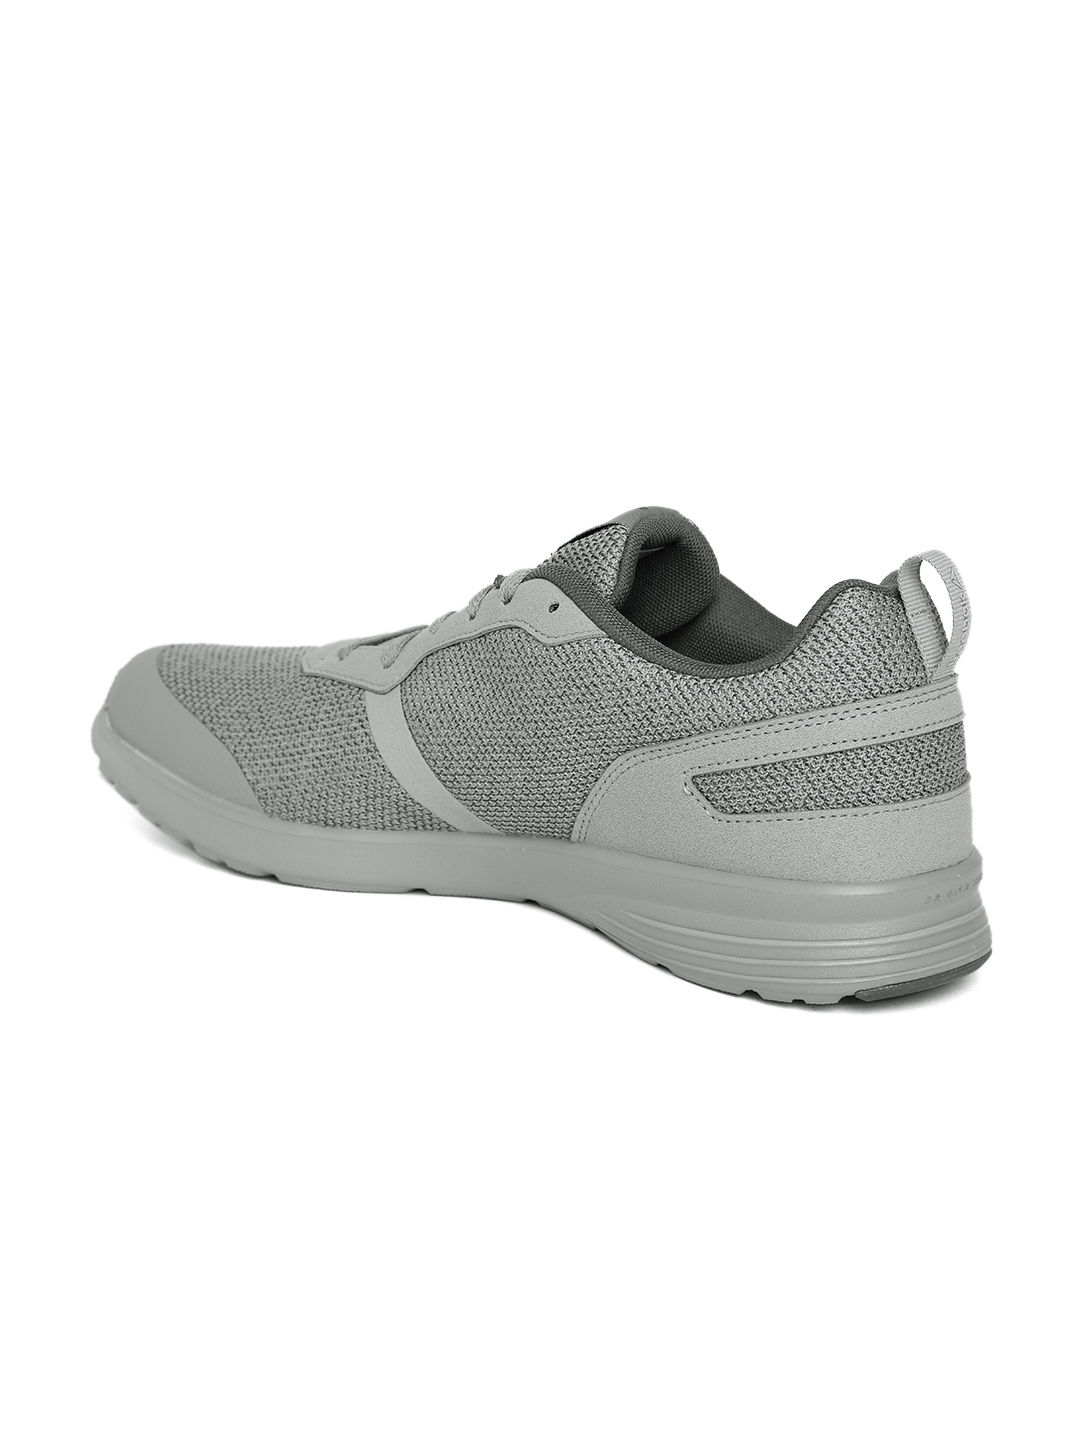 05f5d096f48a Buy Reebok Men Grey FOSTER FLYER Running Shoes - Sports Shoes for ...